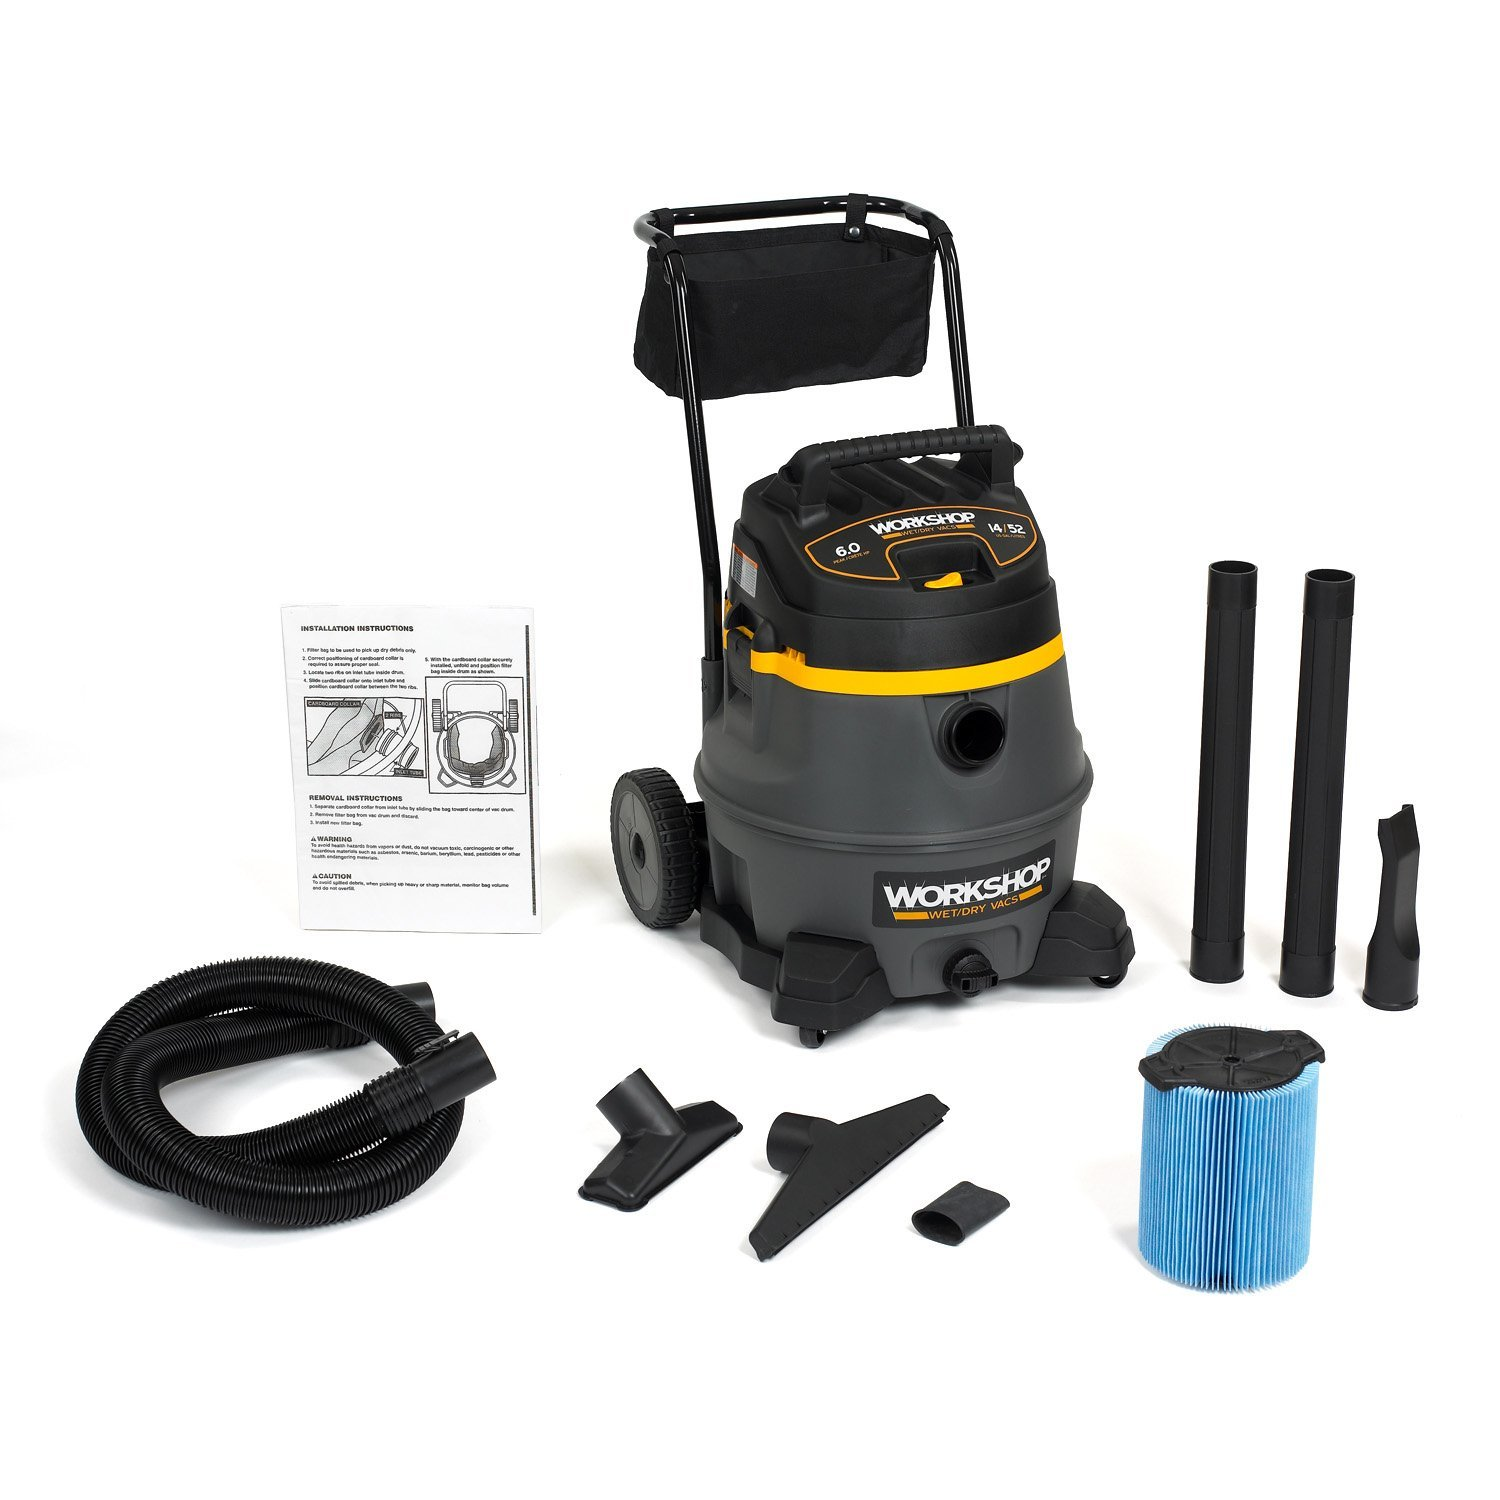 WORKSHOP Wet Dry Vac WS1400CA High Power Wet Dry Vacuum Cleaner